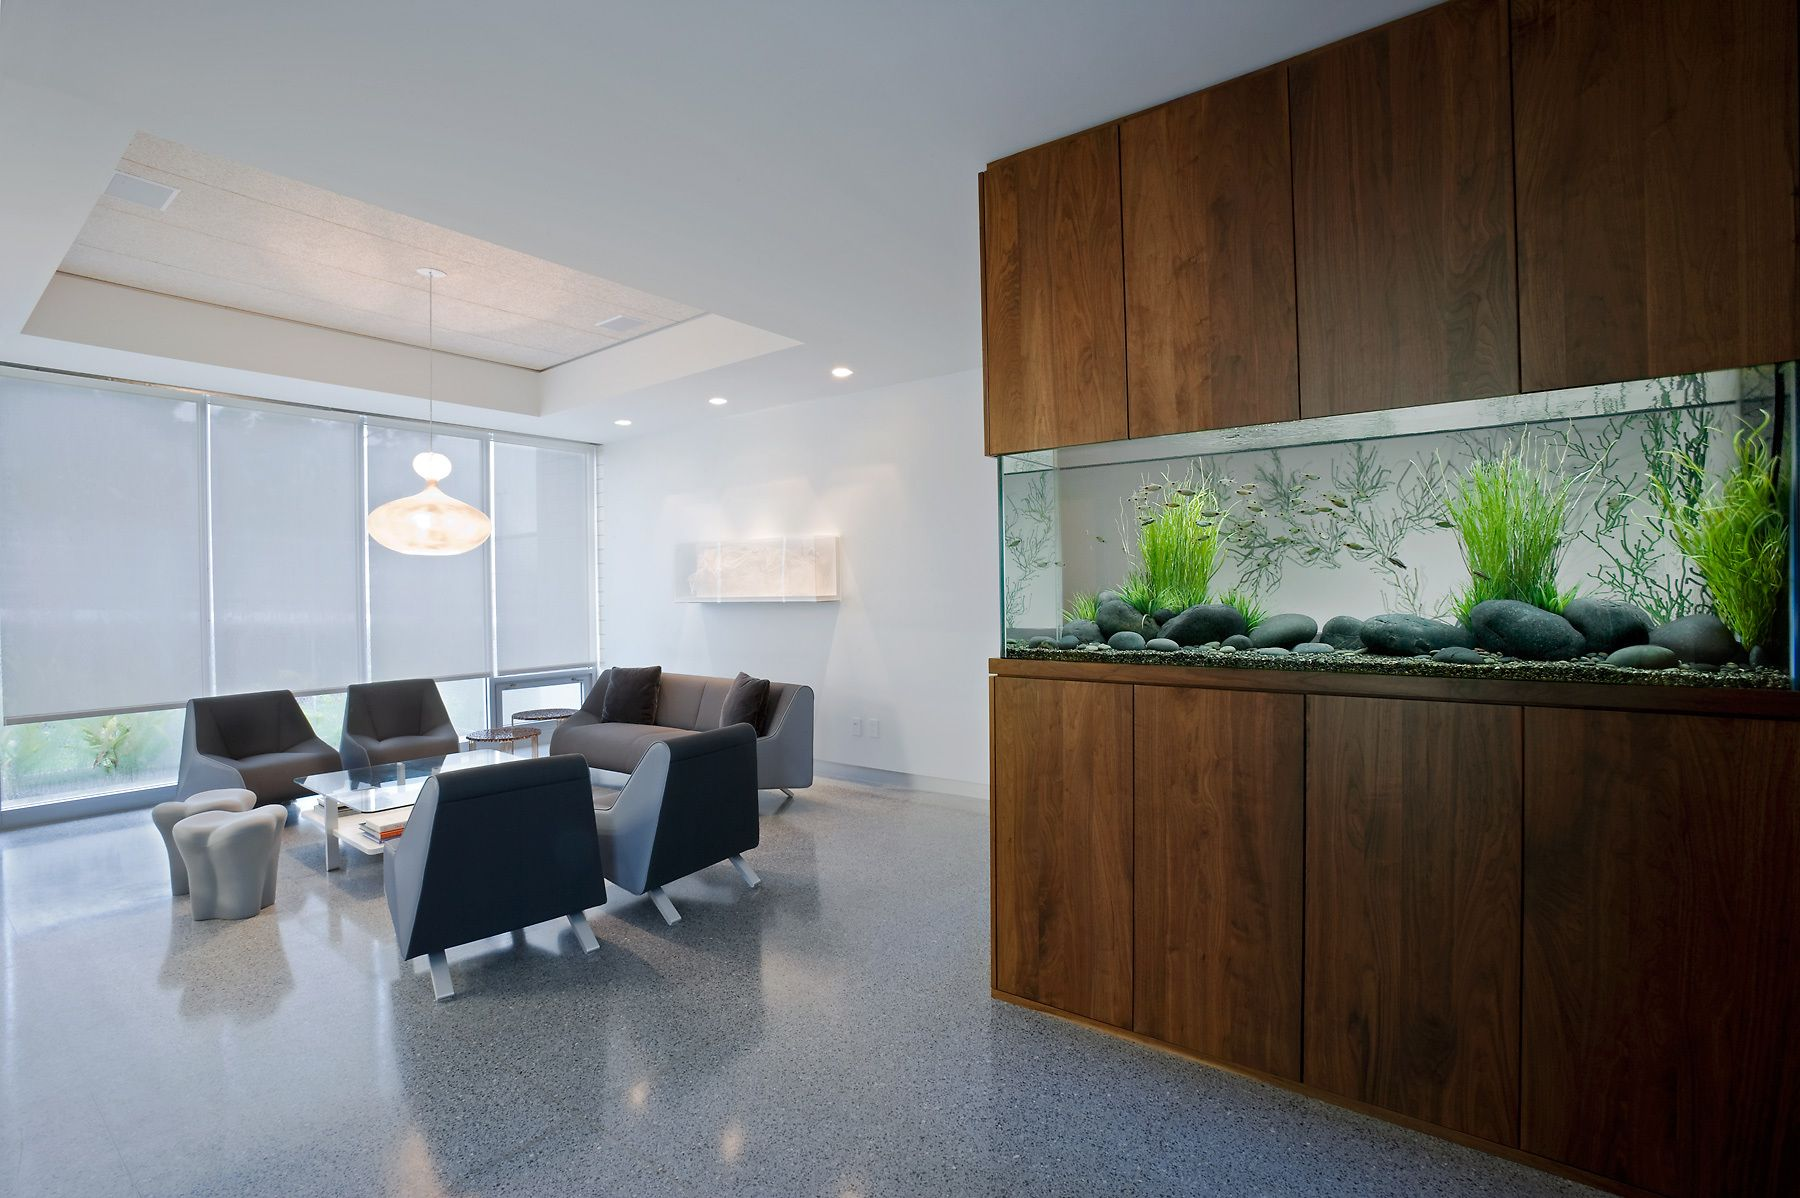 Freshwater Aquarium in a Modern Interior